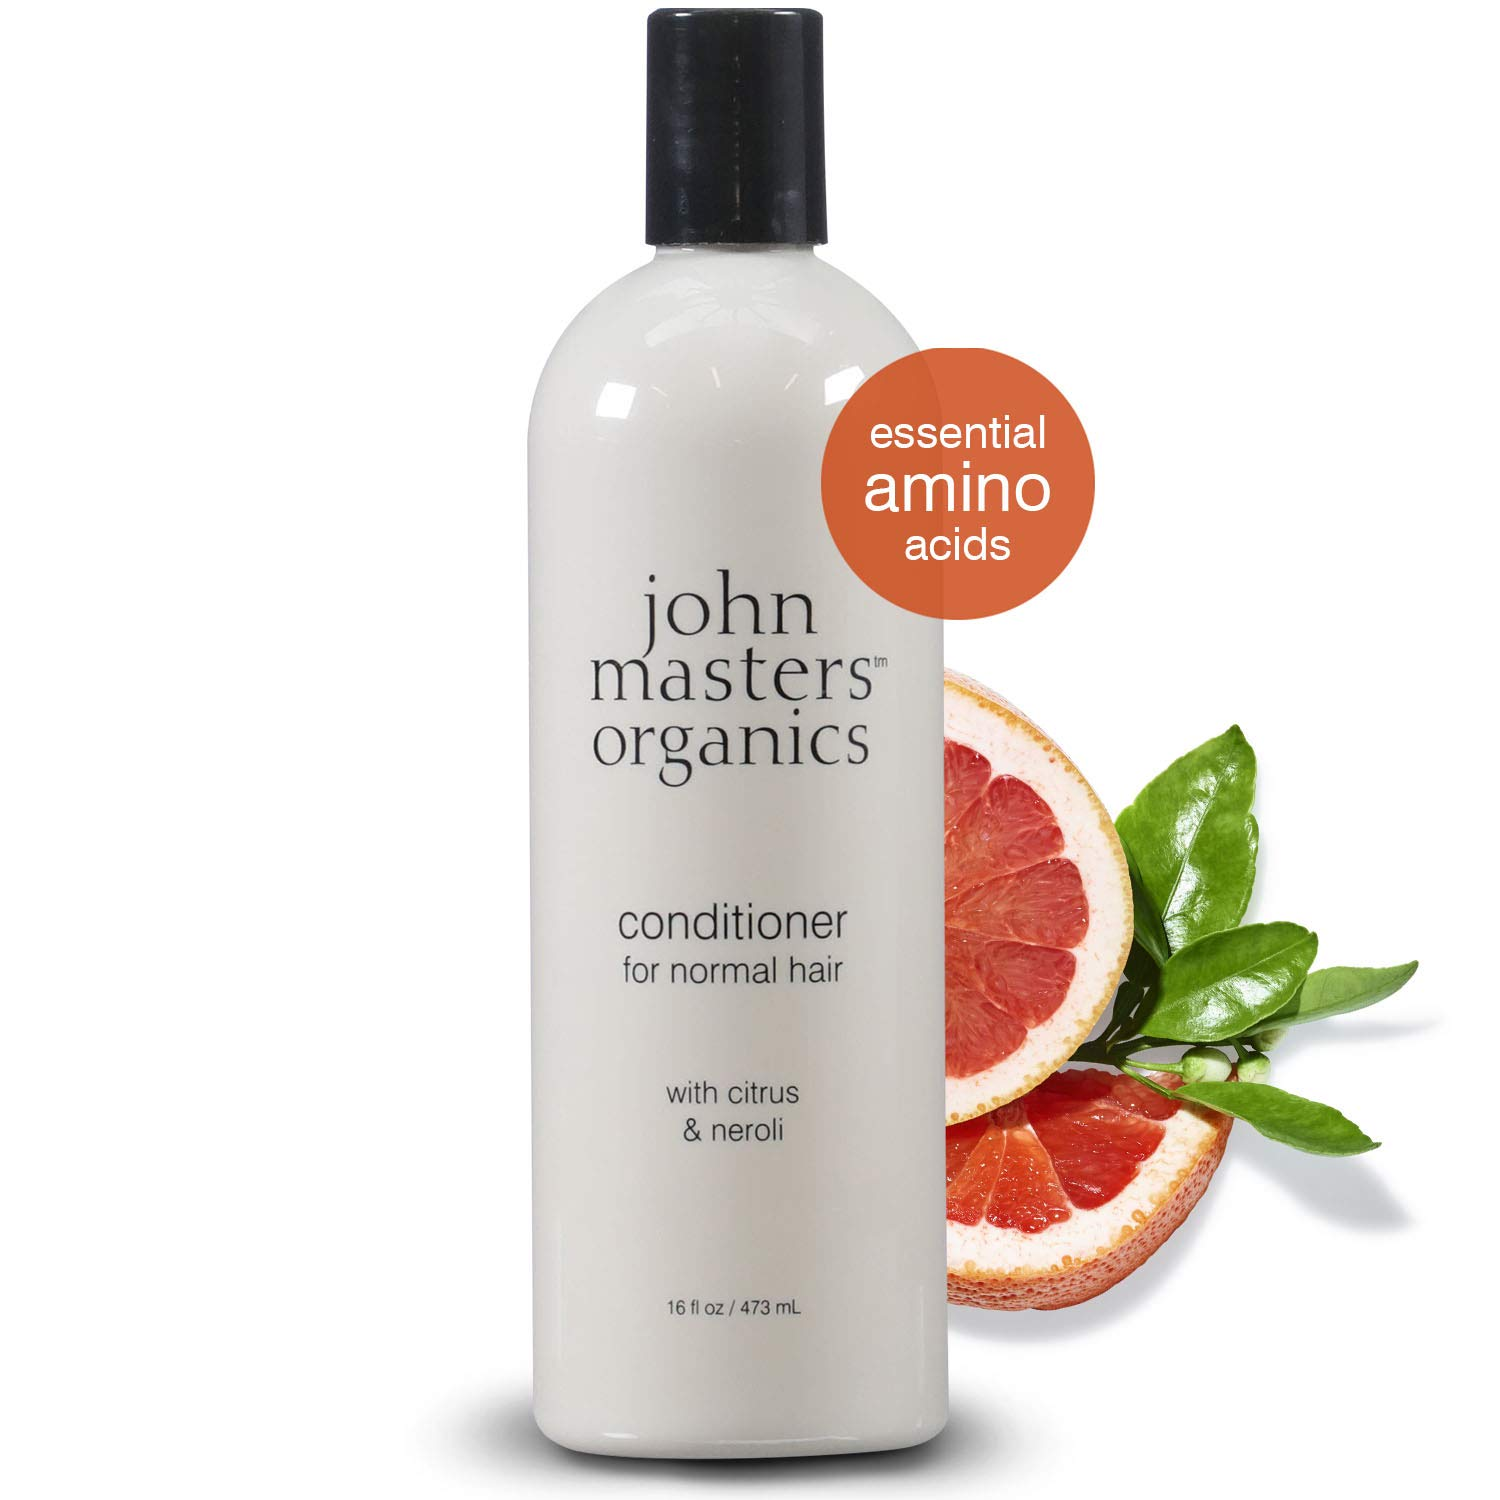 John Masters Organics - Conditioner for Normal Hair with Citrus & Neroli - Infused with Essential Oils - Nourish, Add Shine,& Volume to Hair - 16 oz by John Masters